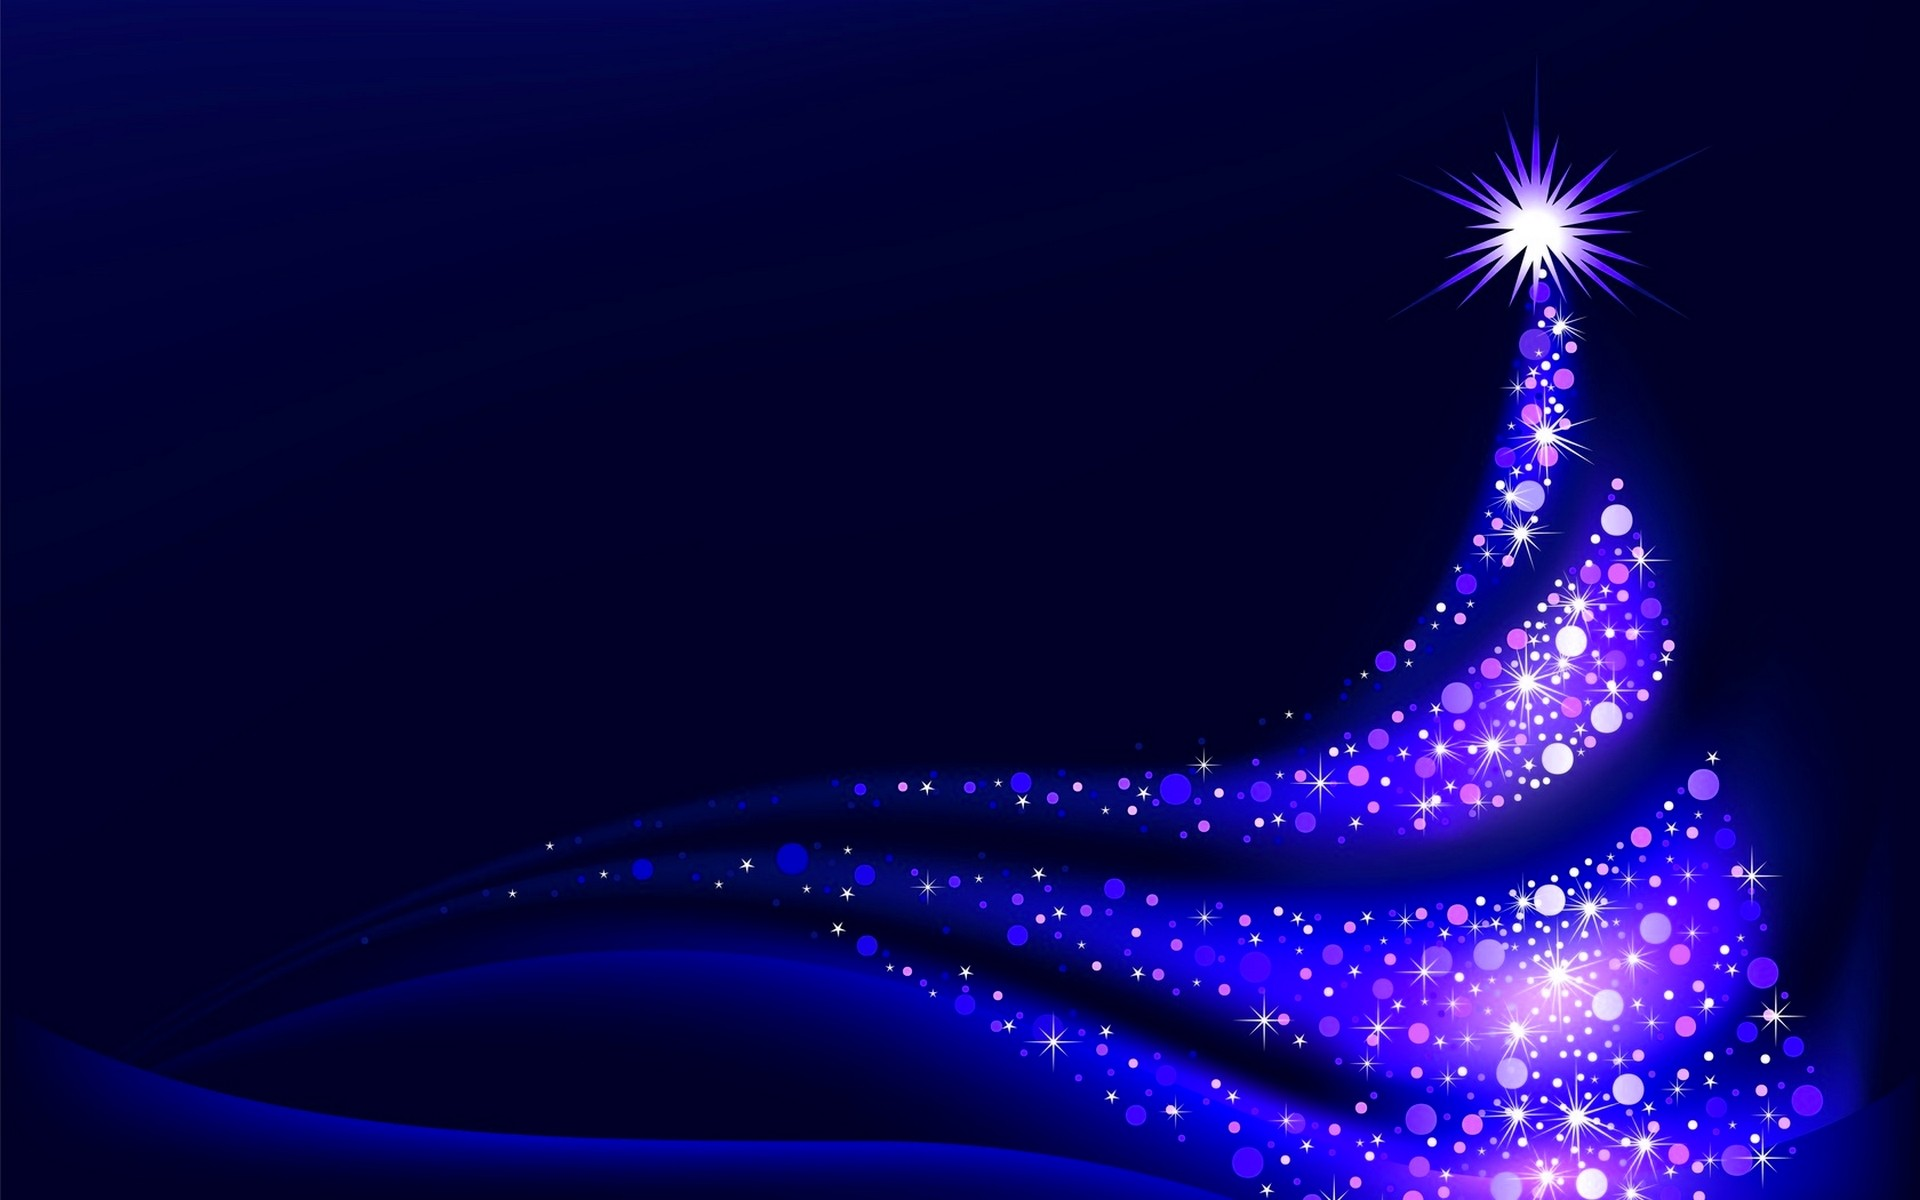 blue christmas wallpaper 66 pictures blue christmas wallpaper 66 pictures